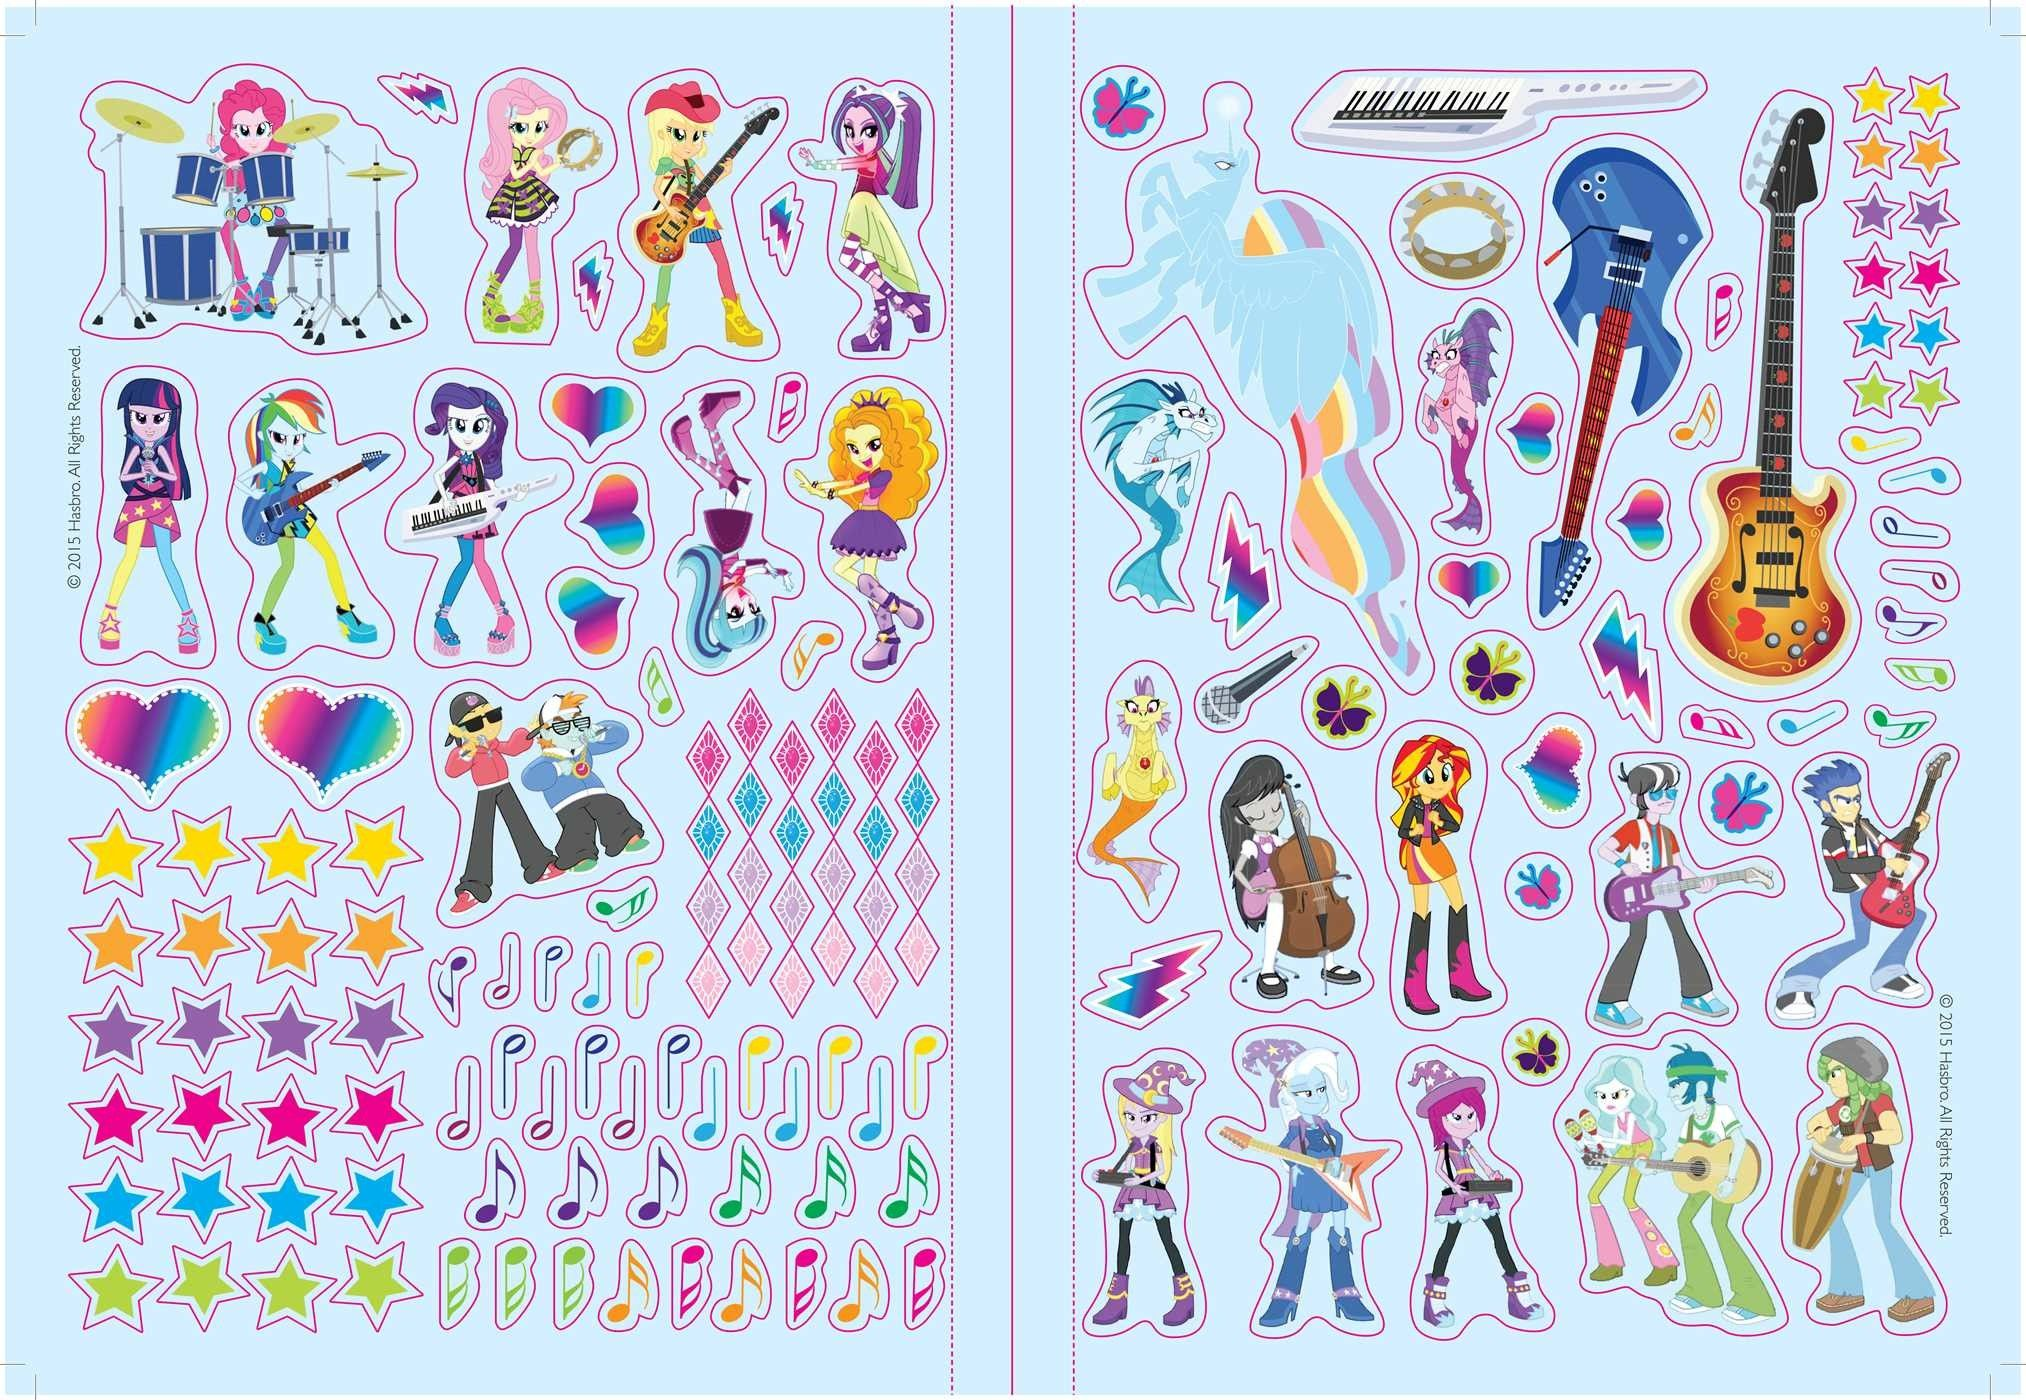 Mlp eg rainbow rocks coloring pages - My Little Pony Equestria Girls Coloring Pages Google Search Rainbow Rocksequestria